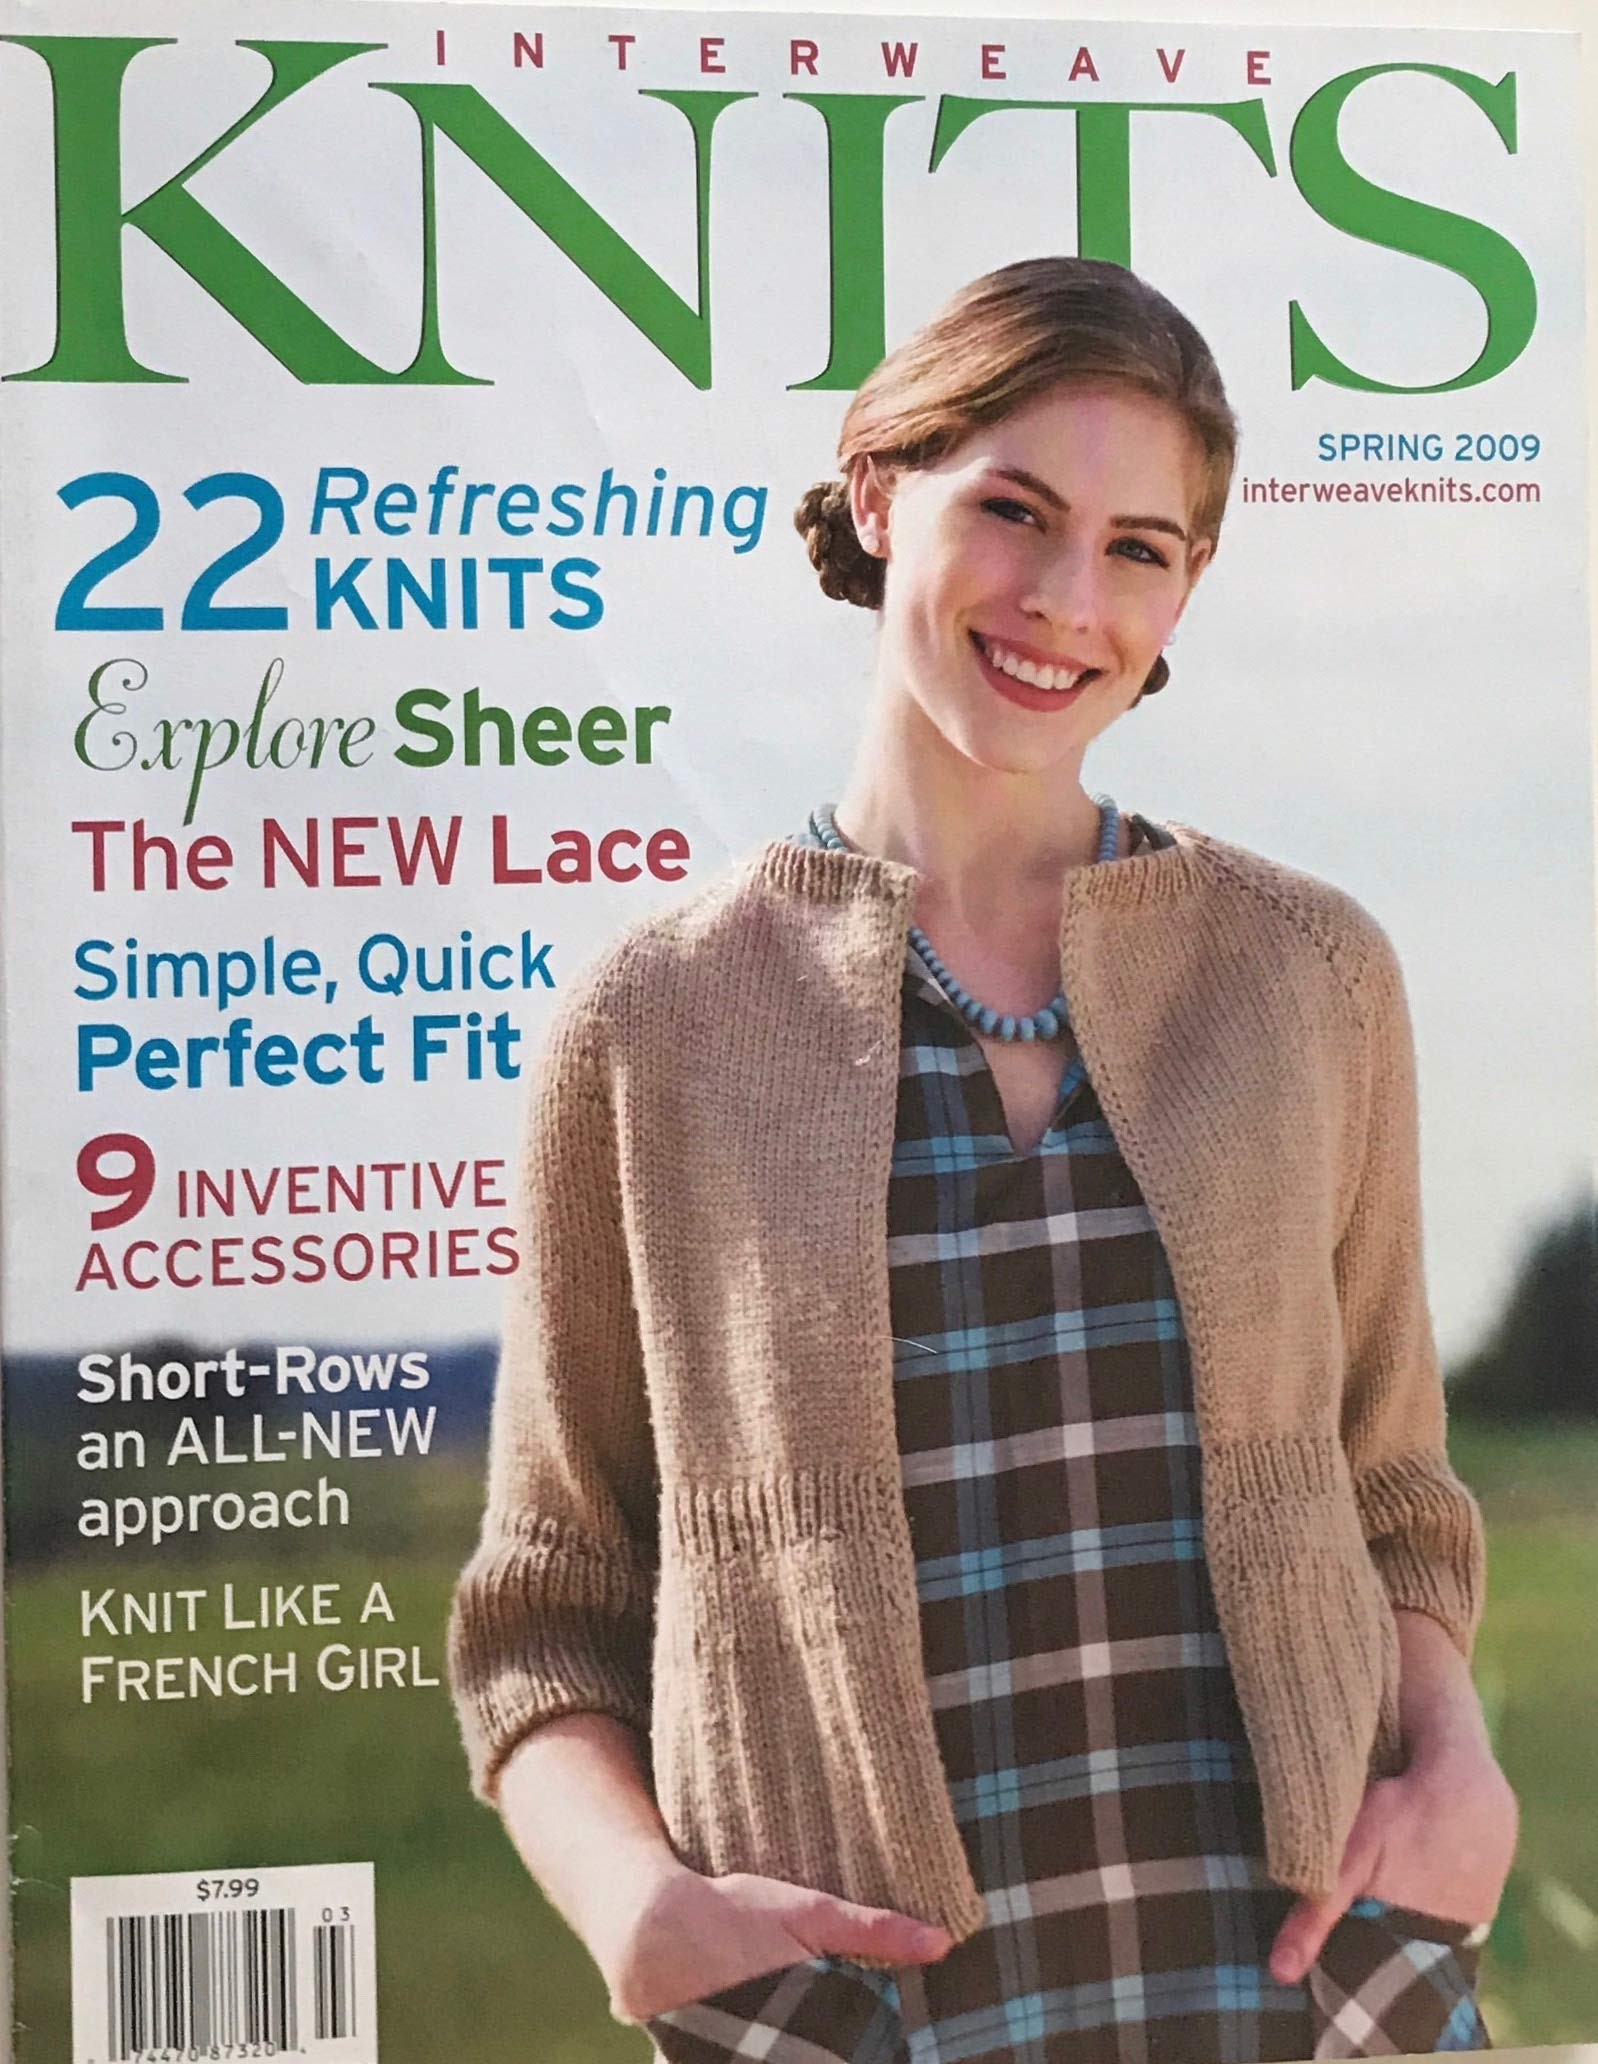 INTERWEAVE KNITS magazine Spring 2009 (Michelle Vitale Loughlin is Artist Spotlight, Knitting Patterns, Knit a Silk Cocoon Cardigan, Millefiori Cardigan, Petal Halter, Rib Cardigan, Shawl, Duffel Bag, Sculptured Lace Scarf, Tunic) by Interweave Press (Image #1)